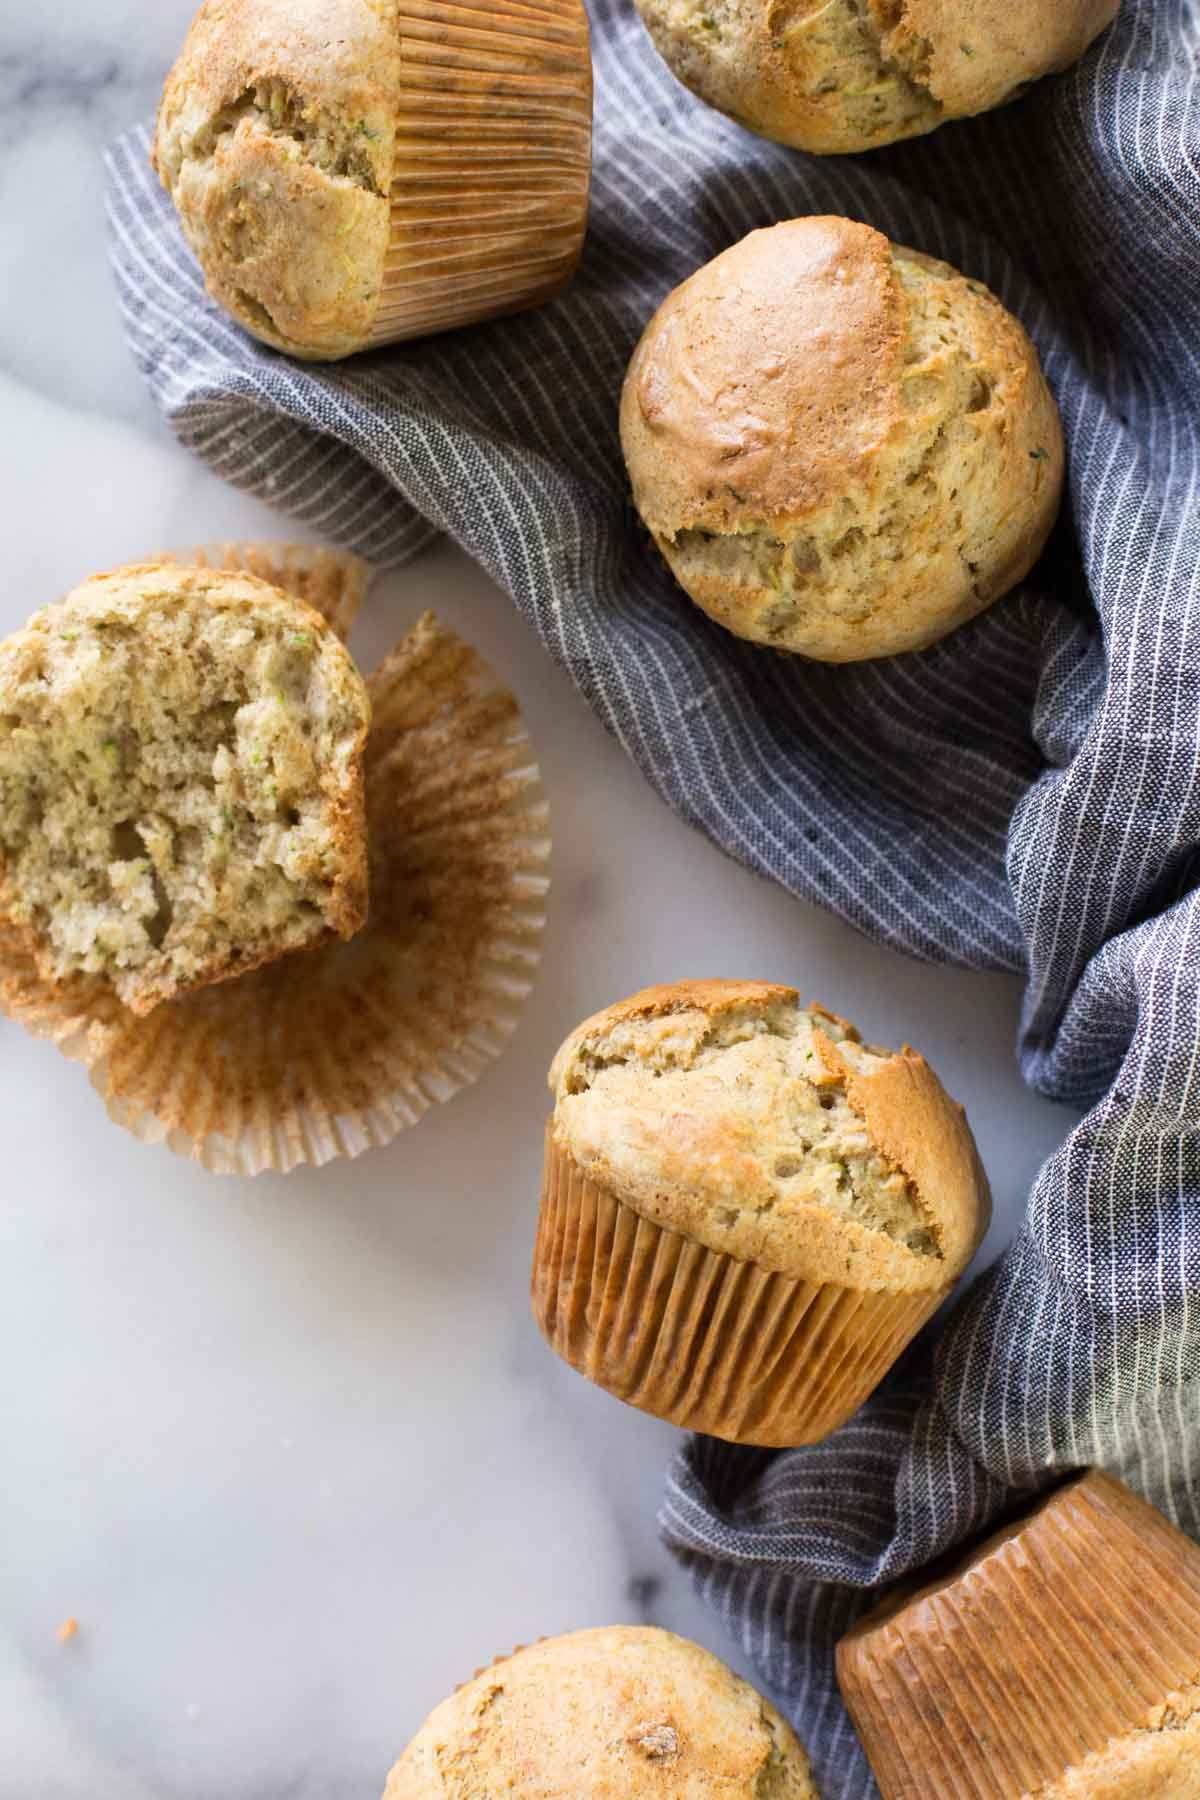 A half of a Healthier Zucchini Muffin sitting on its wrapper, with more whole muffins around it.